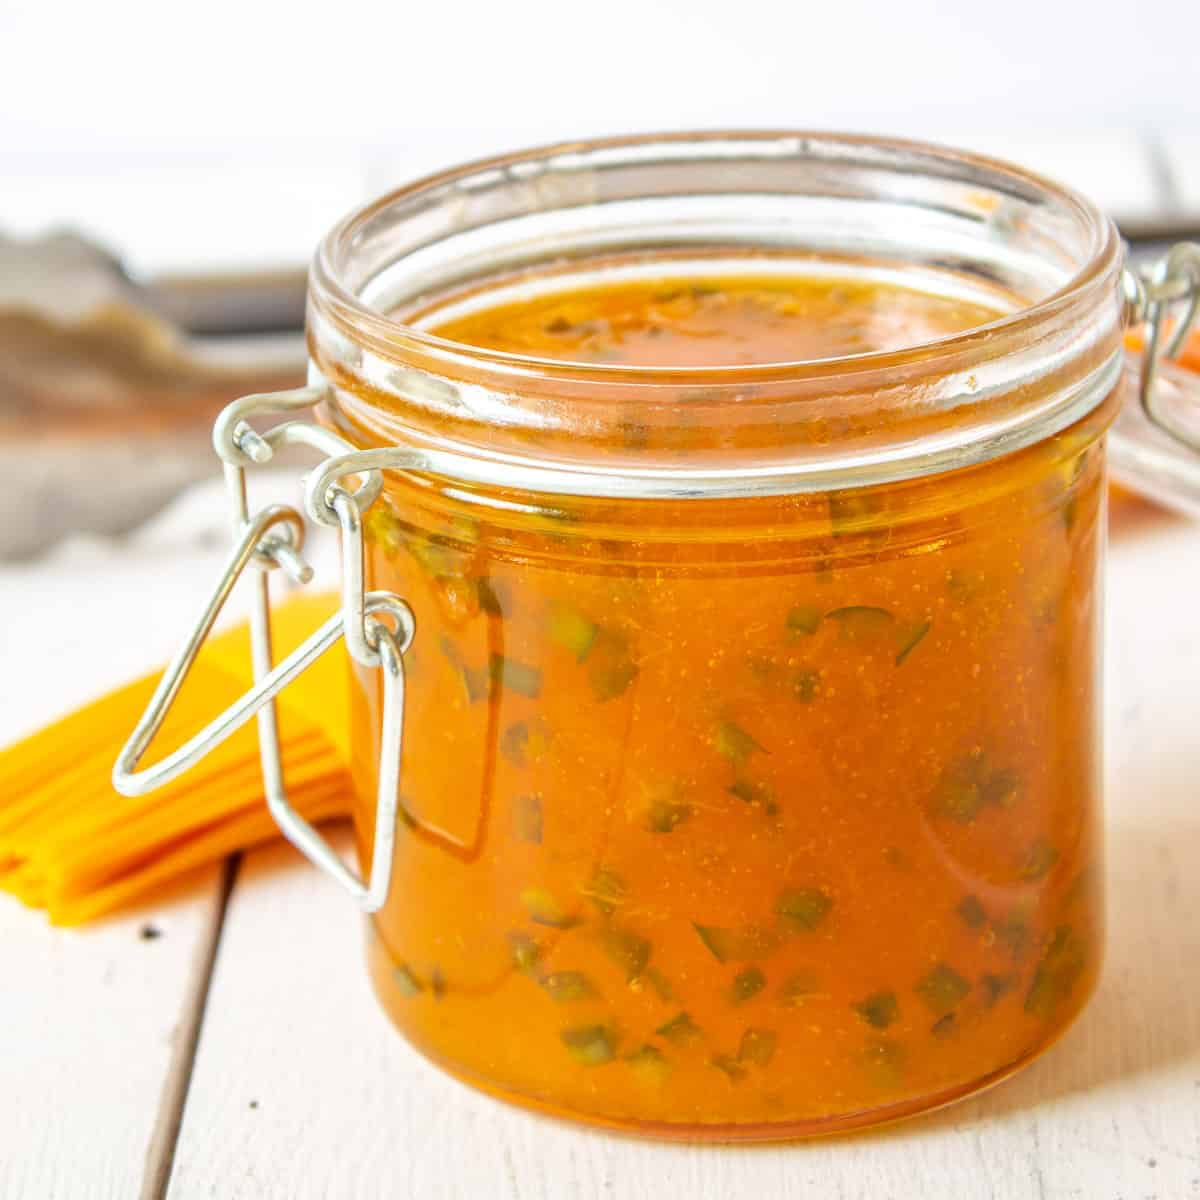 A glass jar filled with an apricot sauce with minced jalapenos.